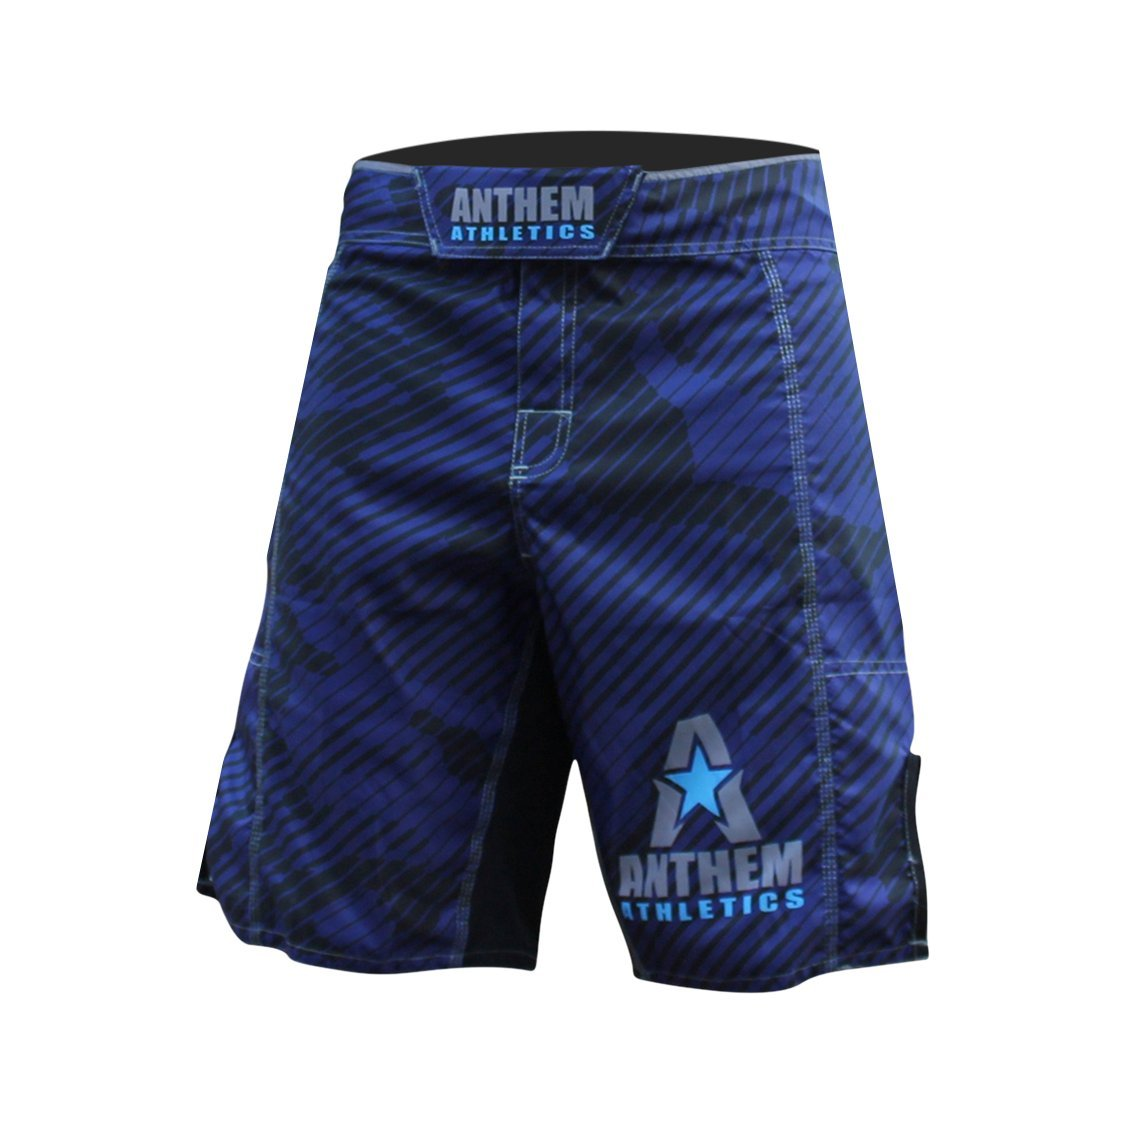 Anthem Athletics Resilience Fight Shorts - Navy Line Camo - 36''